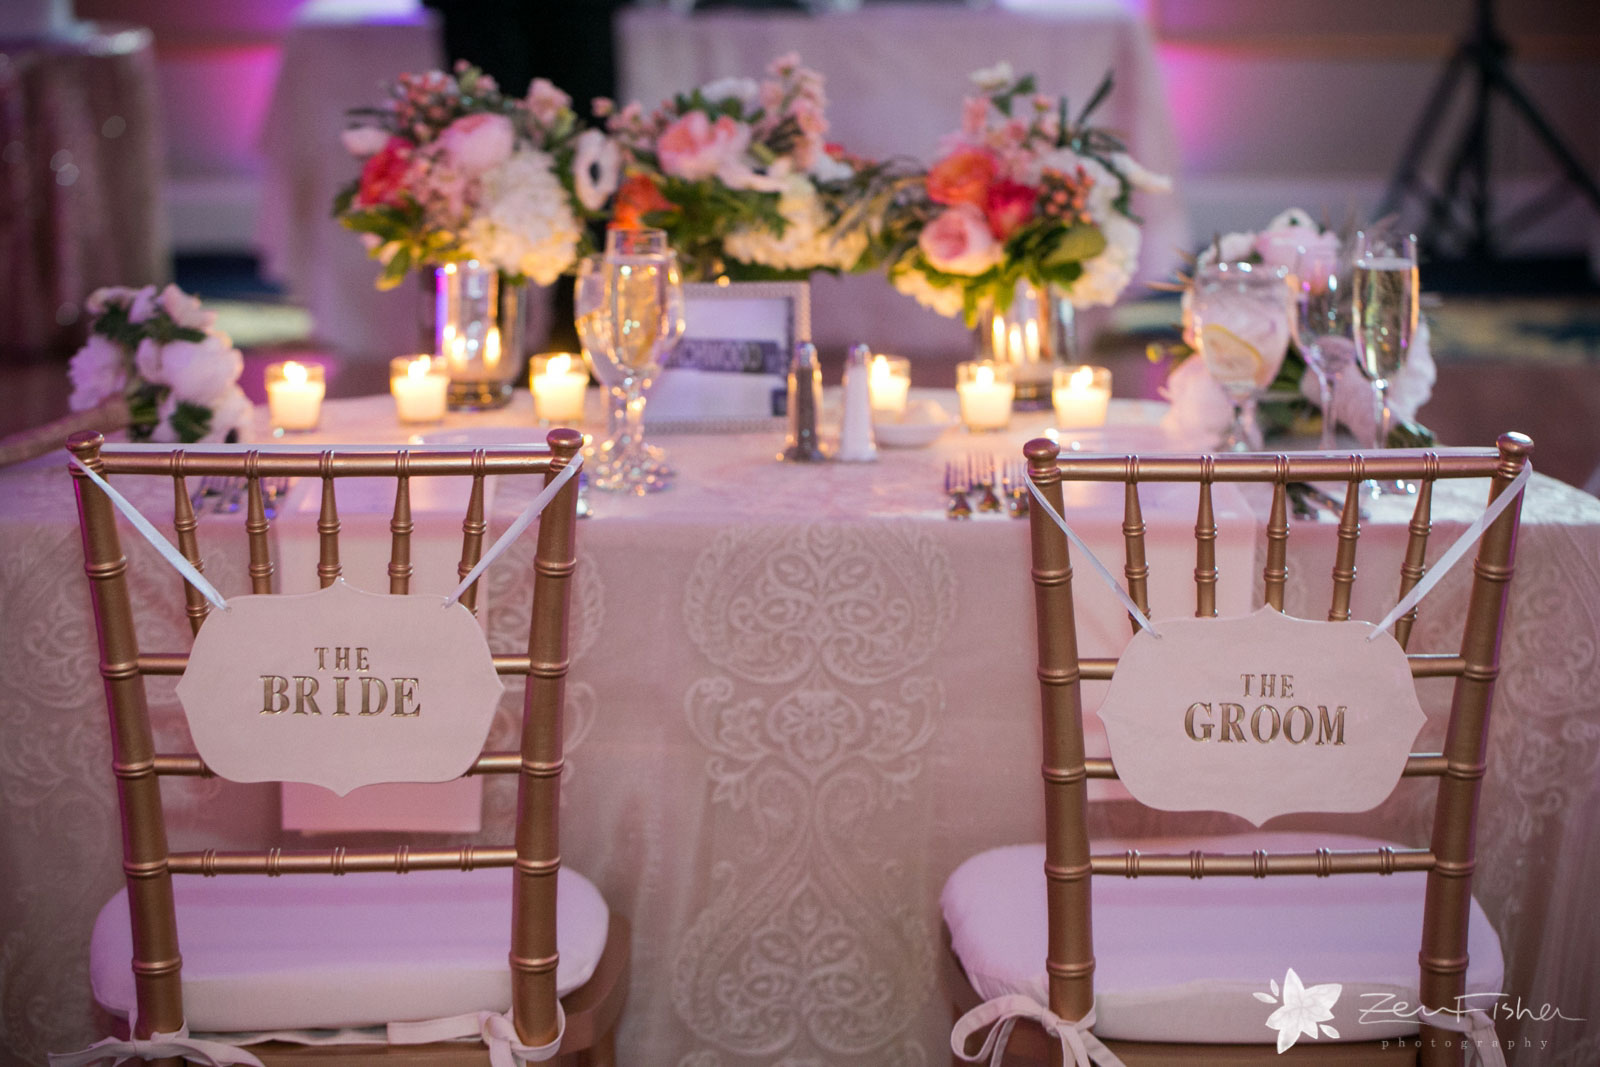 Details of the sweetheart table and the bride and groom's chairs with bouquets decorating the table.